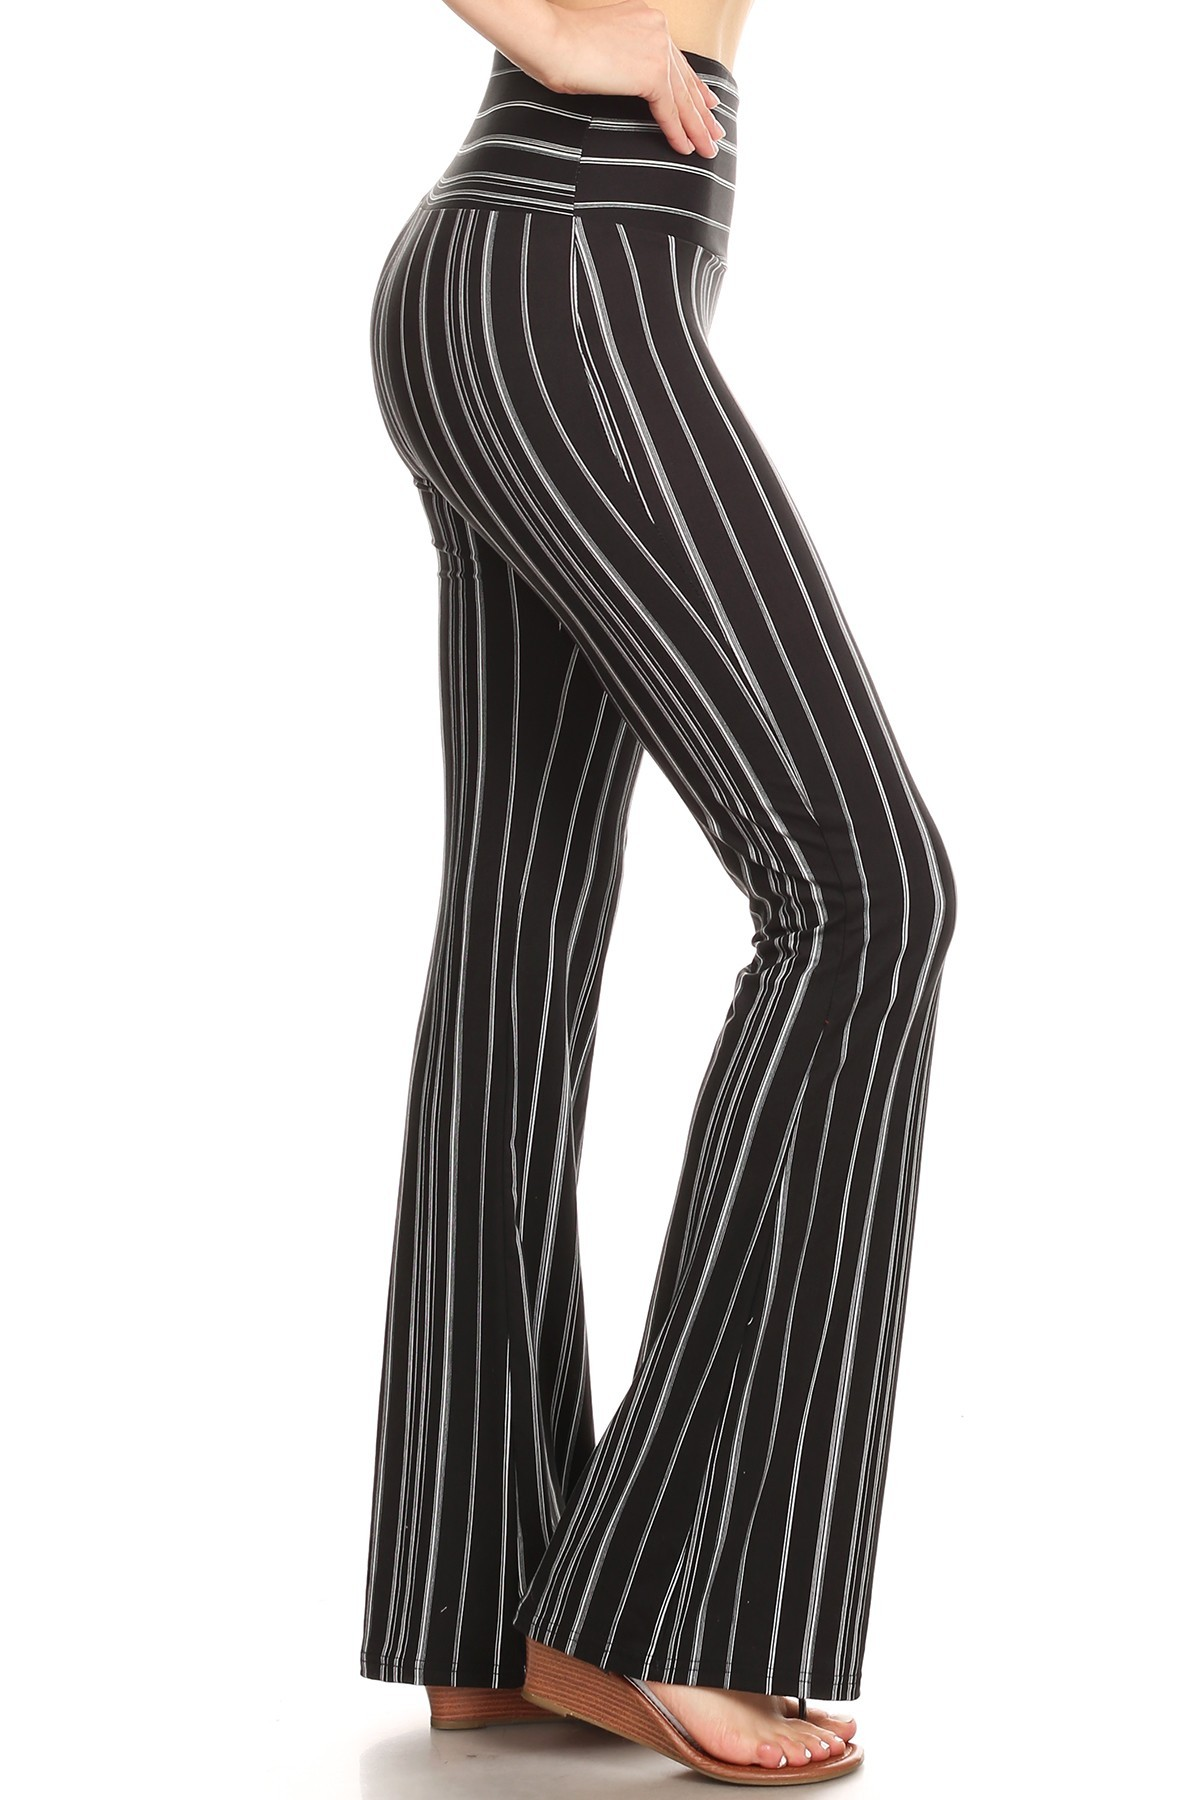 BLACK/WHIET STRIPED PRINT HIGH WAIST BRUSH POLY FLARE PANTS#8FP06-13